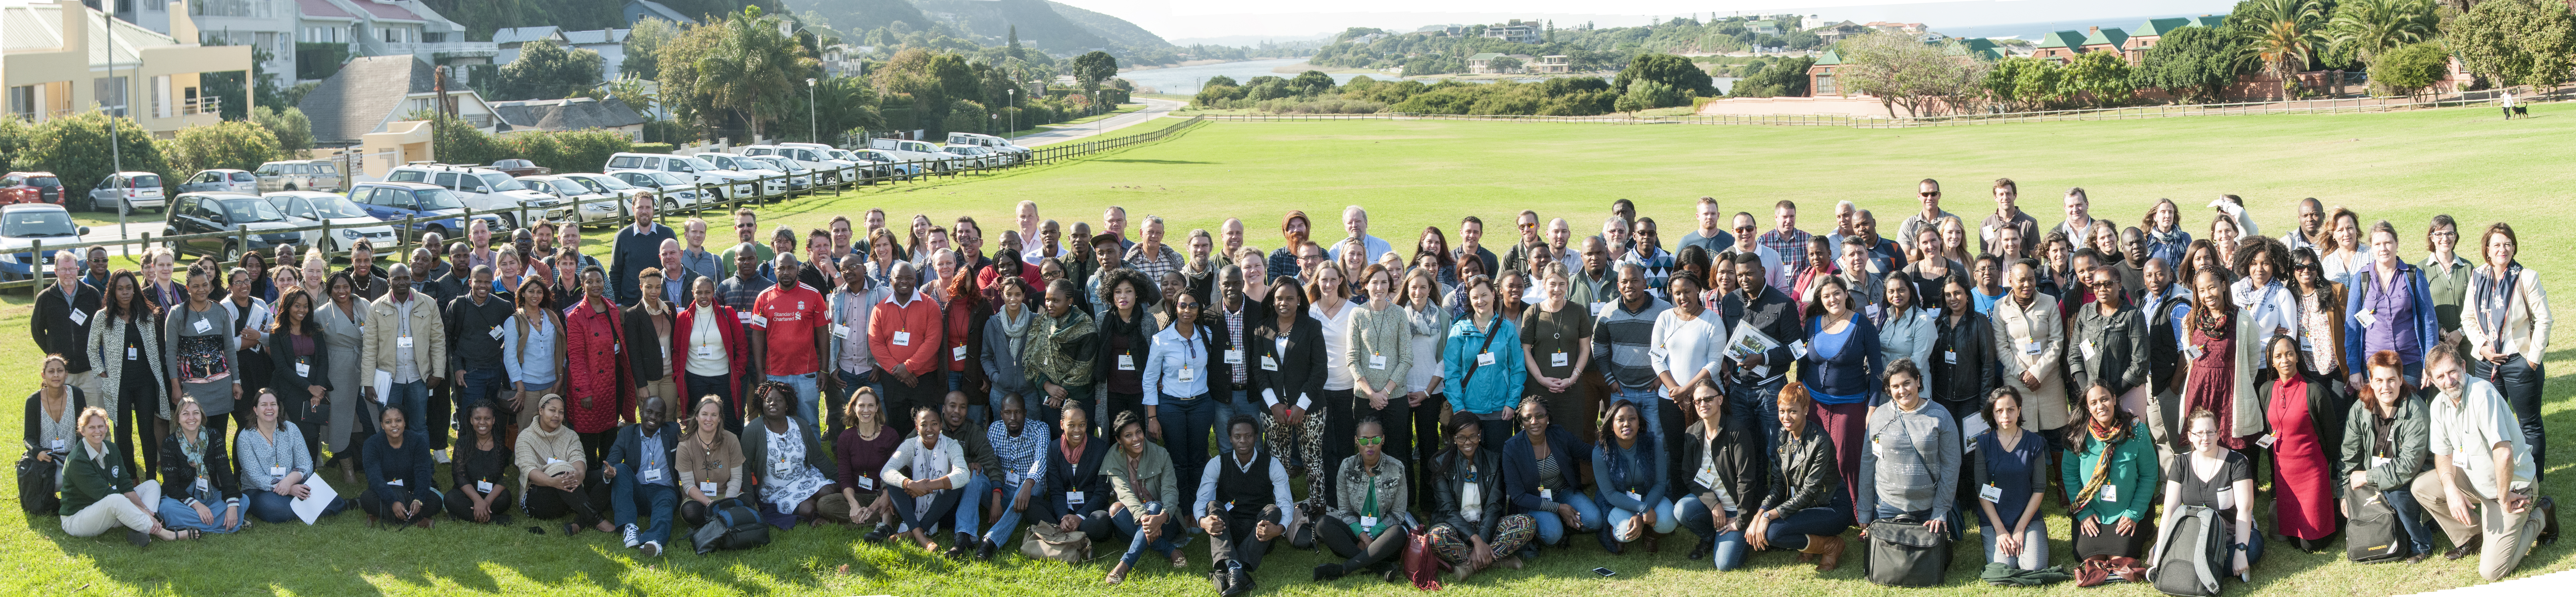 Group Photo; Biodiversity Planning Forum